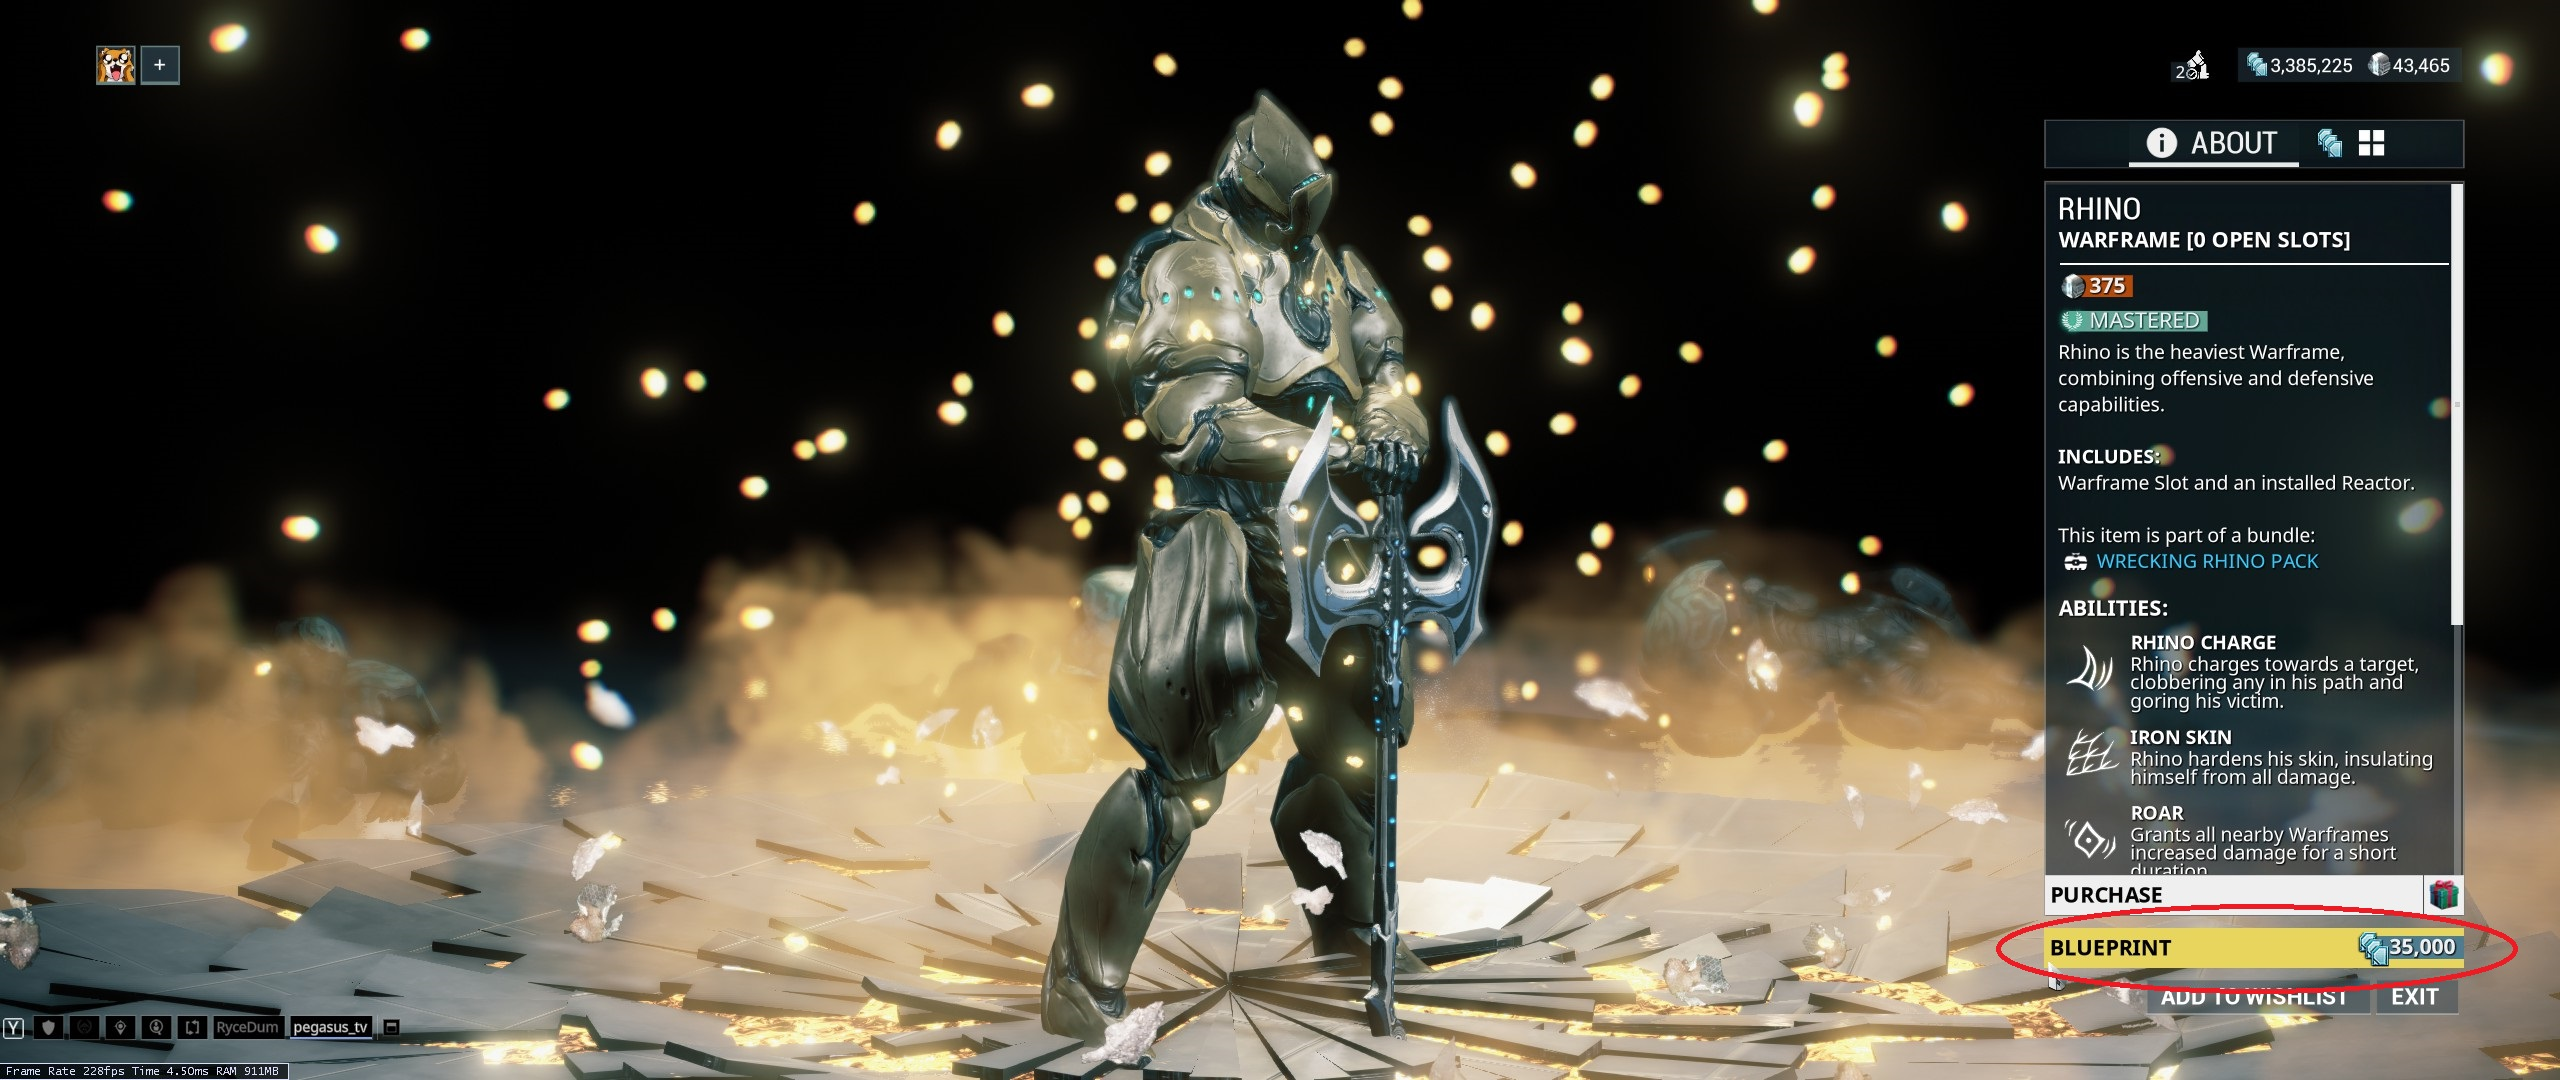 Steam community guide ultimate beginners guide to warframe most blueprints for non prime warframe parts neuroptics chassis and systems can be farmed the blueprint that combines the parts can be bought off the malvernweather Image collections